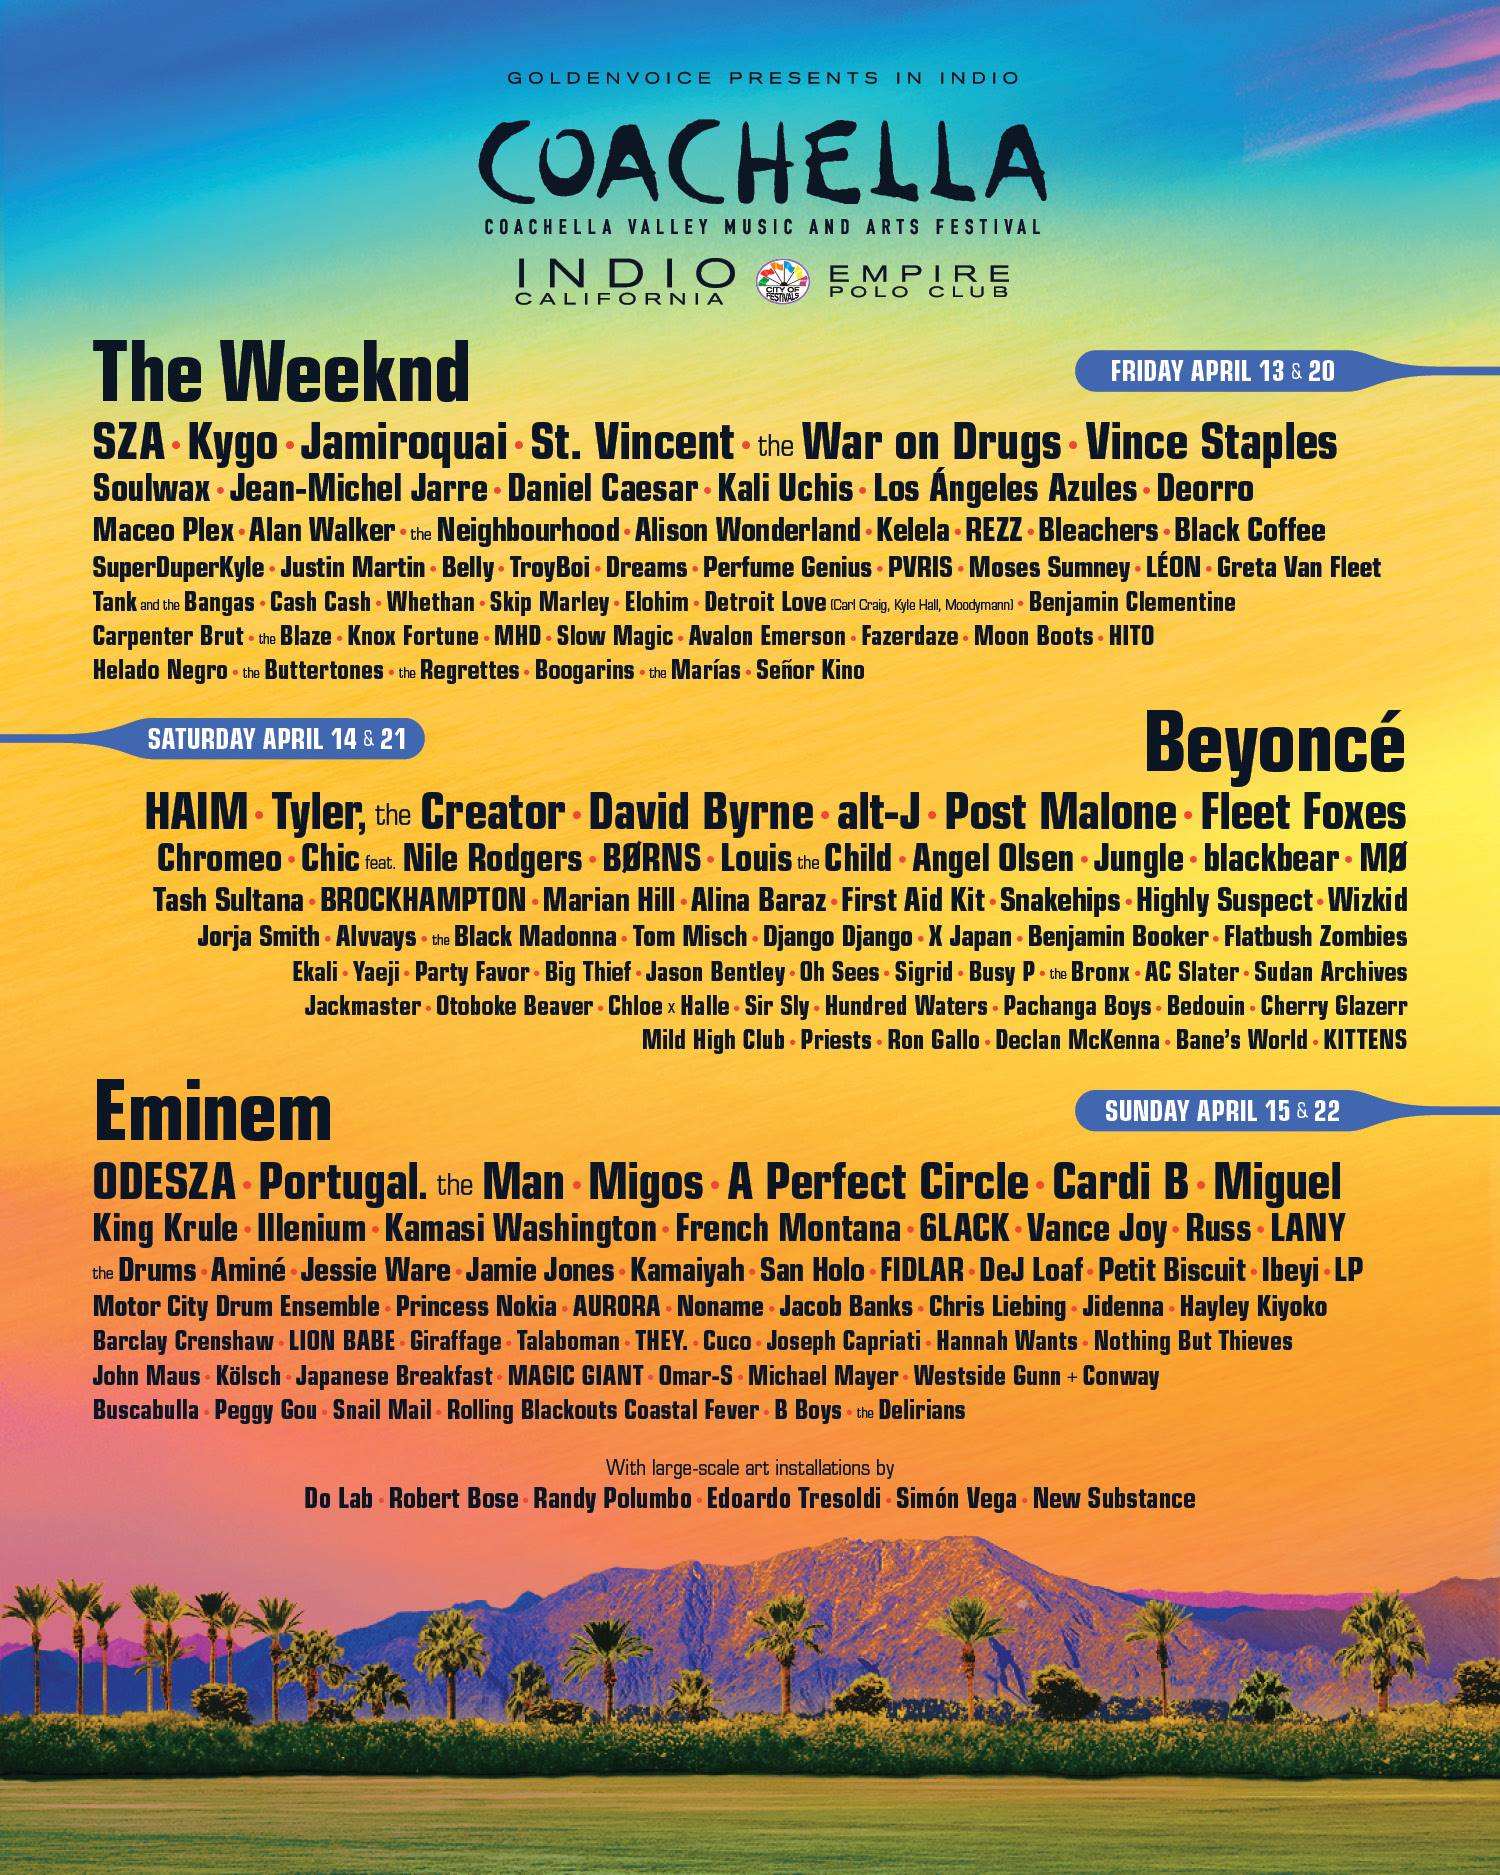 Coachella Releases 'Day Club' Pool Parties in Palm Springs